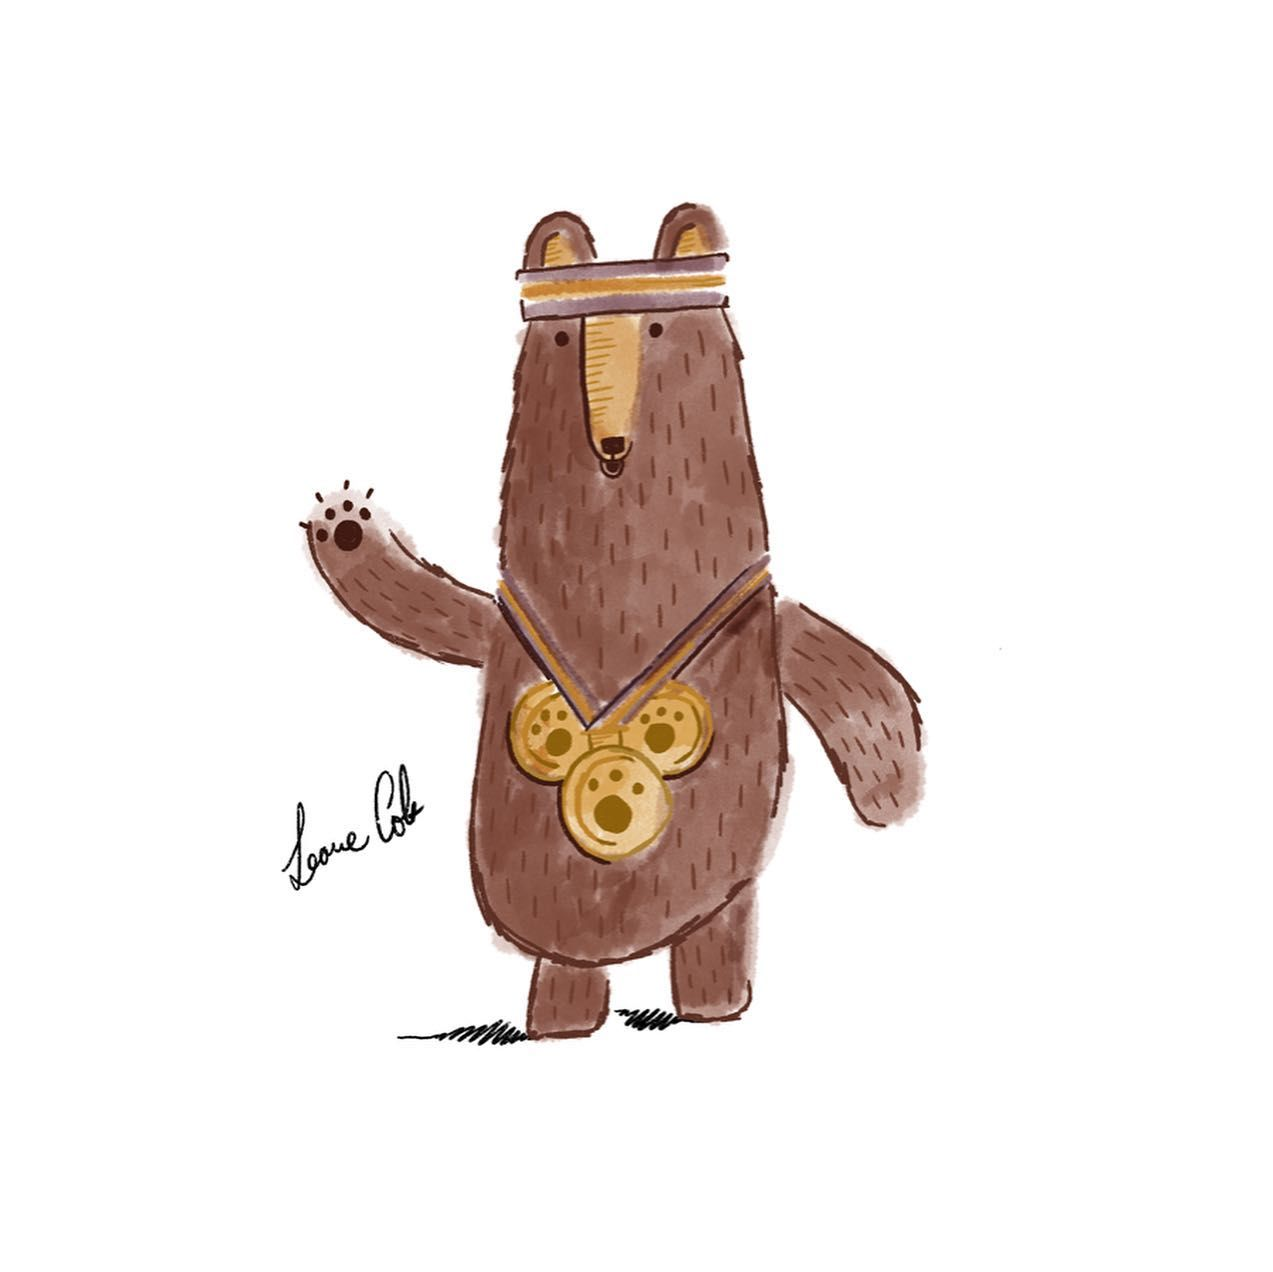 The third drawing for Rob Biddulph's 'Draw with Rob' series was Fred the Bear from his book 'Grrrrr!'.🏅 I may have rushed him a little, but here he is!